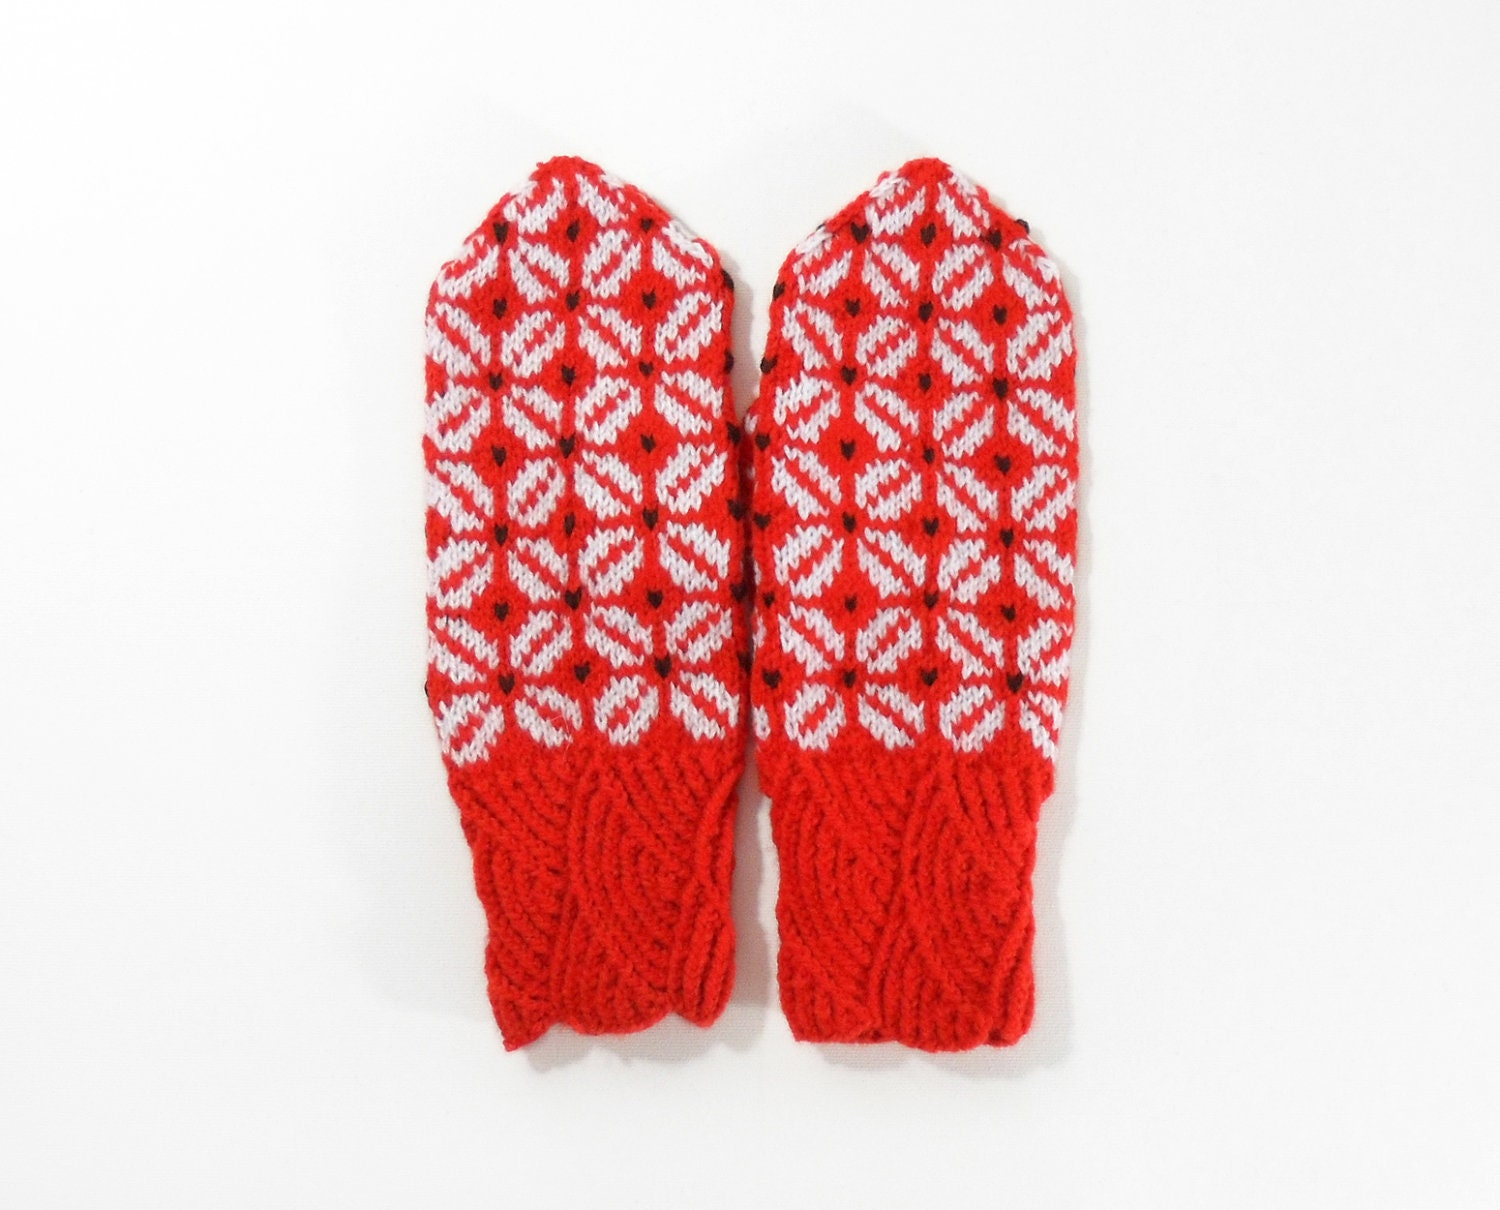 Hand Knitted Mittens - Red and White, Size Extra Large - UnlimitedCraftworks